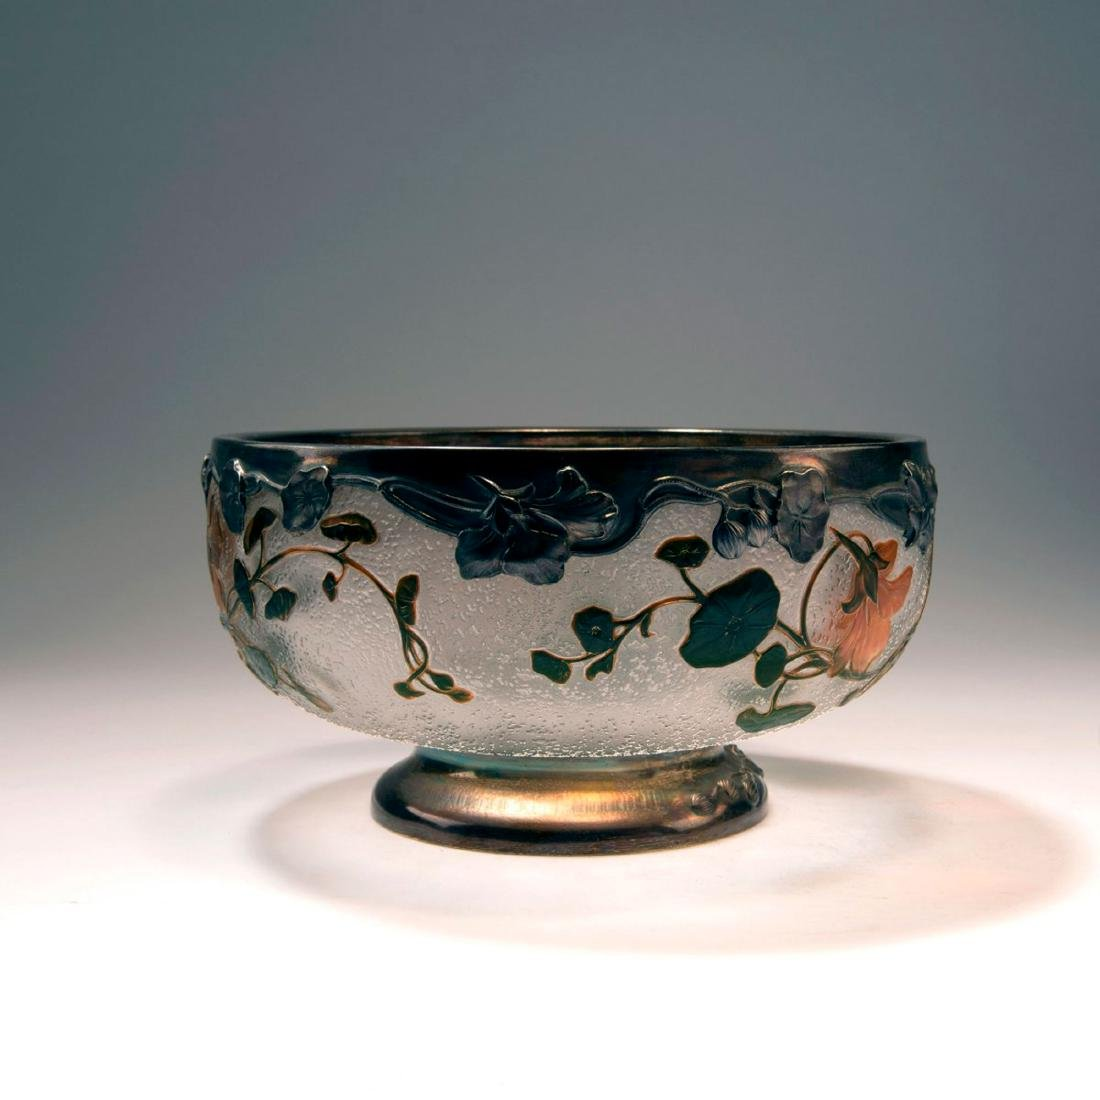 'Capucines' bowl with silver mounting, 1898-1900 - 2